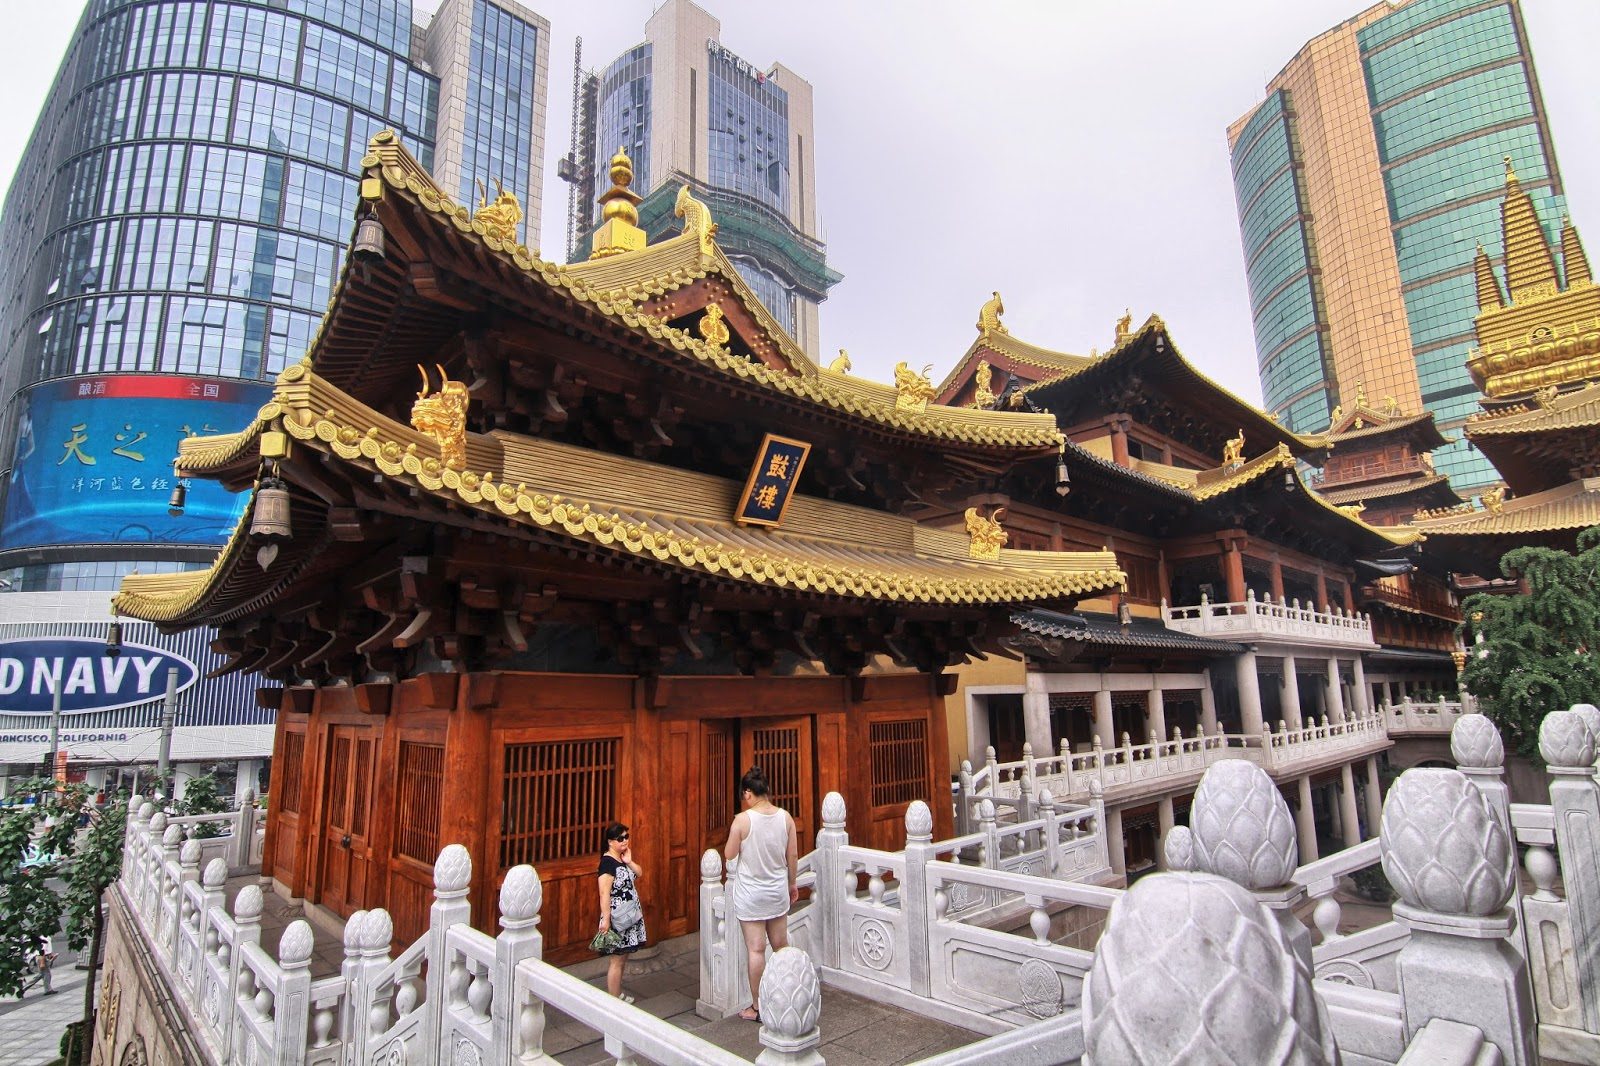 Inside Architecture of Jing'an Temple Shanghai